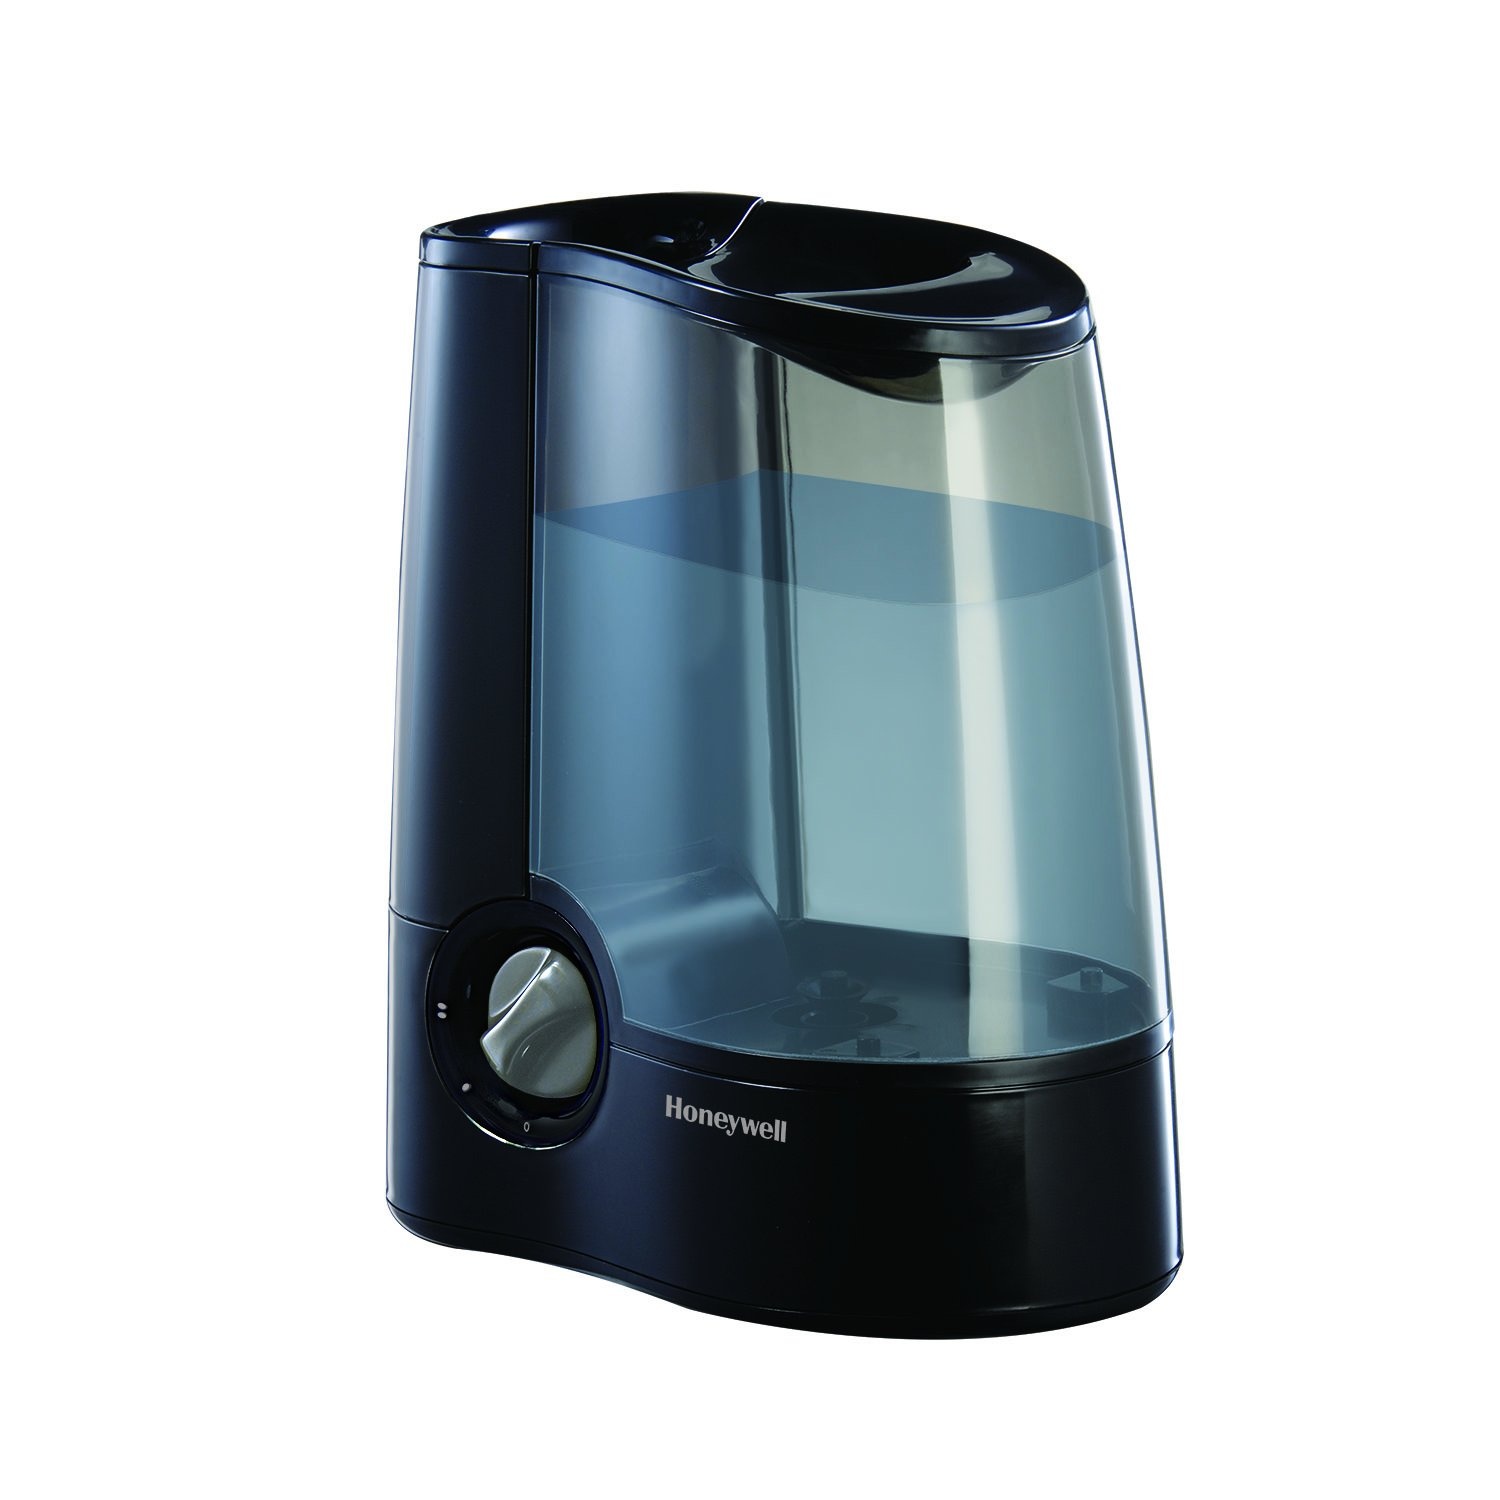 Best Honeywell Humidifier: HWM705B